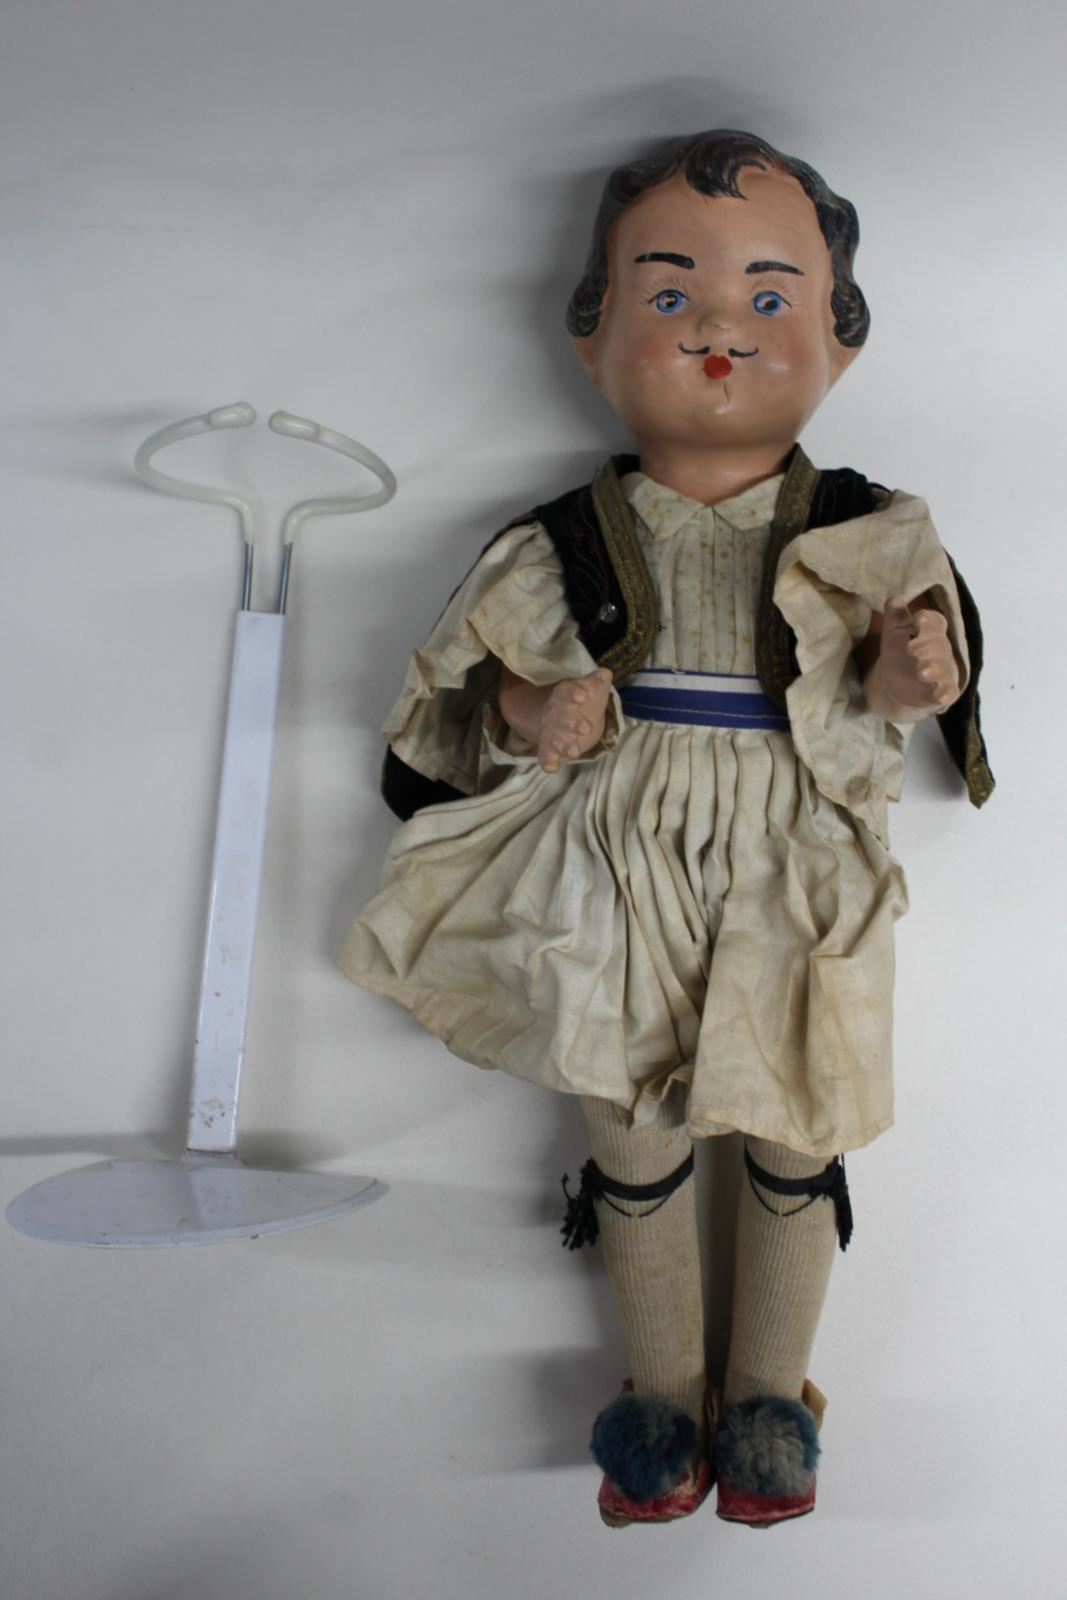 1920-Antique-18-Inch-Composition-Doll-Greek-Boy-In-Traditional-Clothing-W-Stand